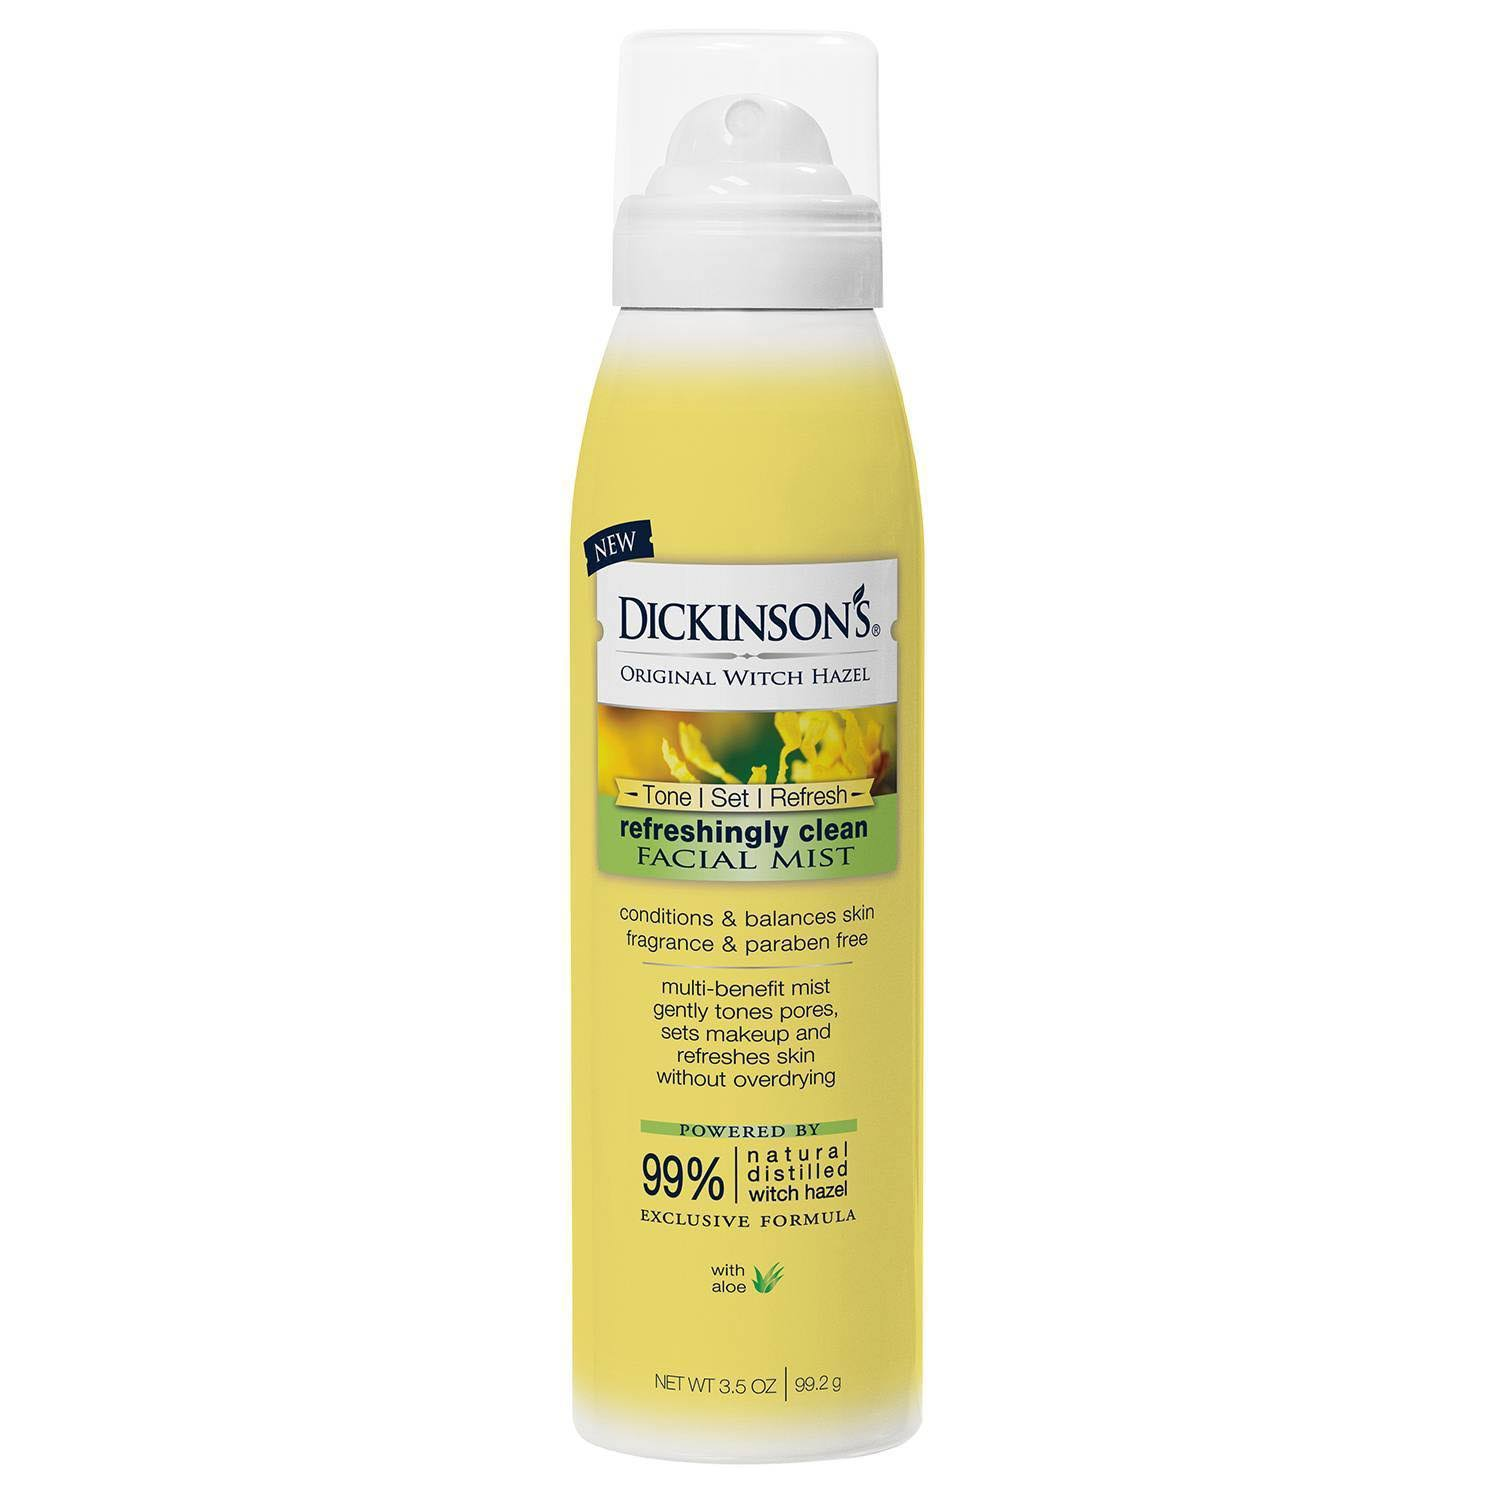 Dickinson's Original Witch Hazel Refreshingly Clean Facial Mist - 3.5oz